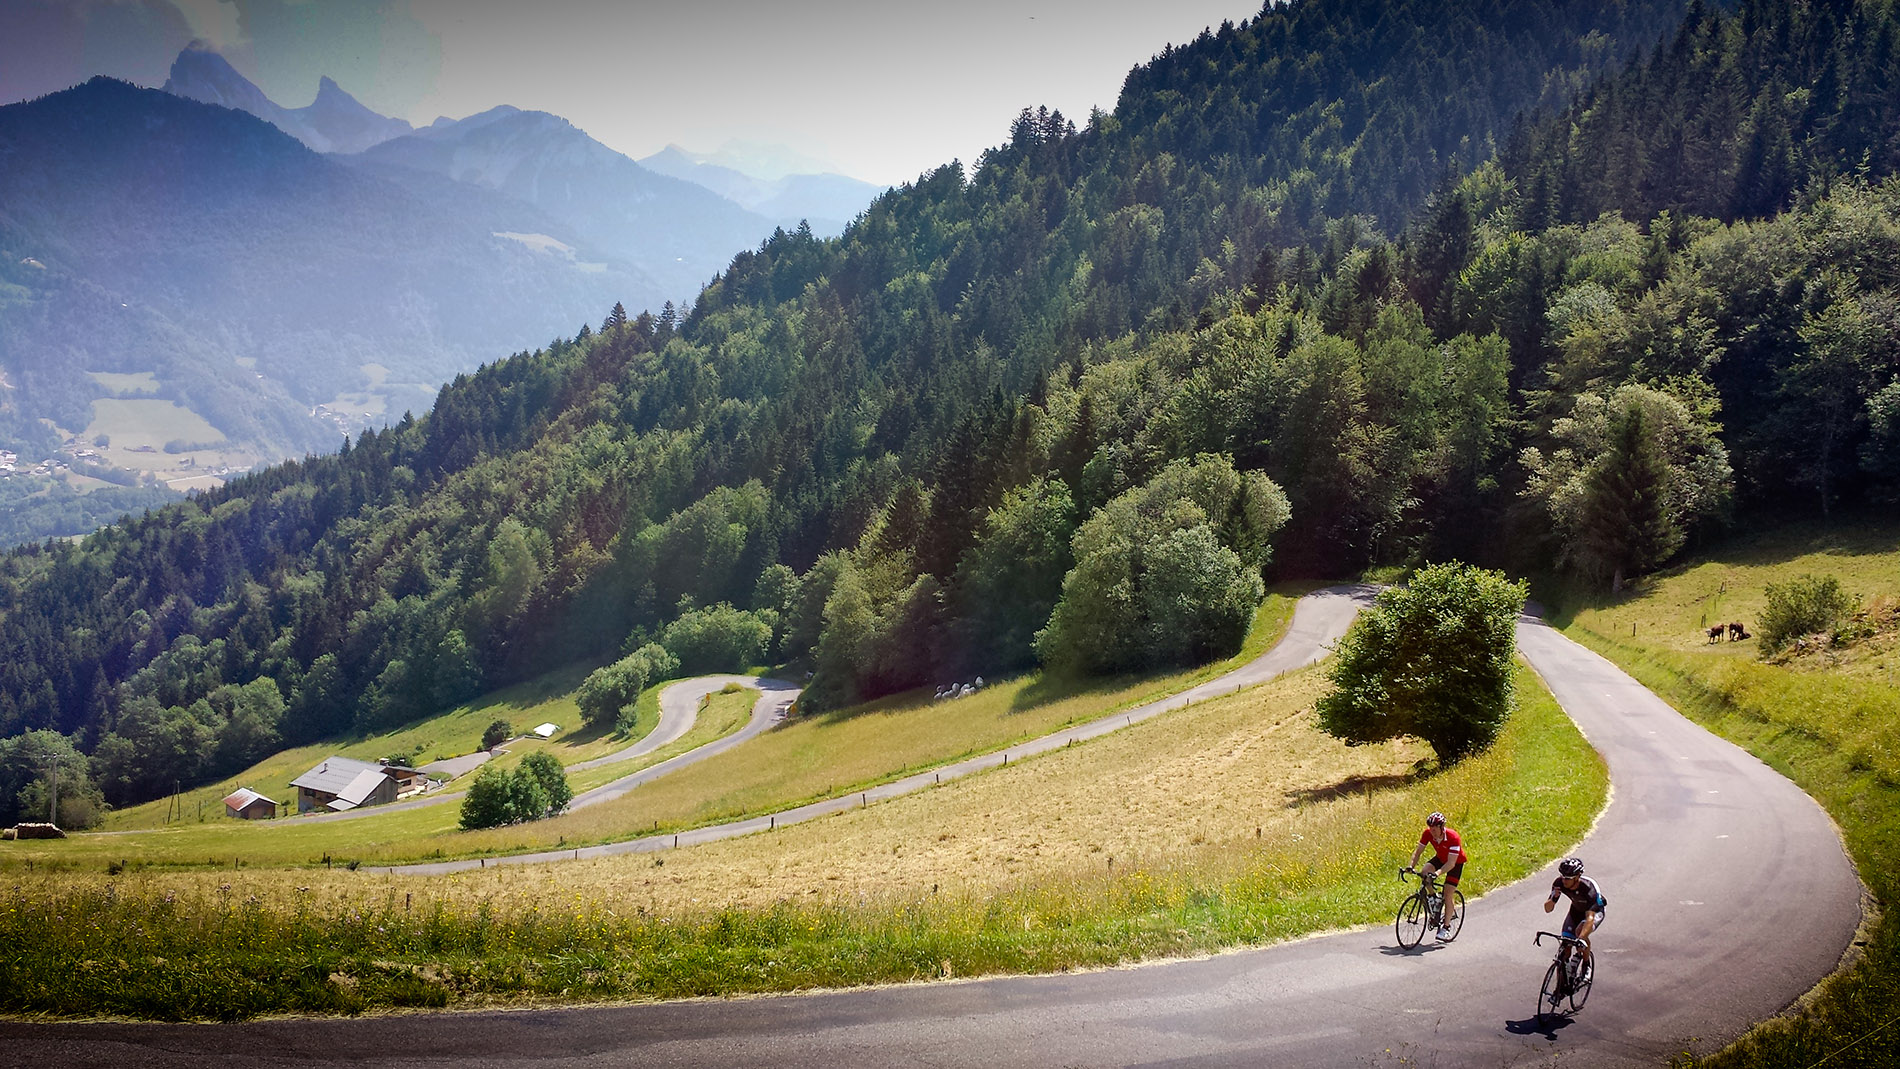 Switch back bends, another stunning route on the doorstep of Velovation.